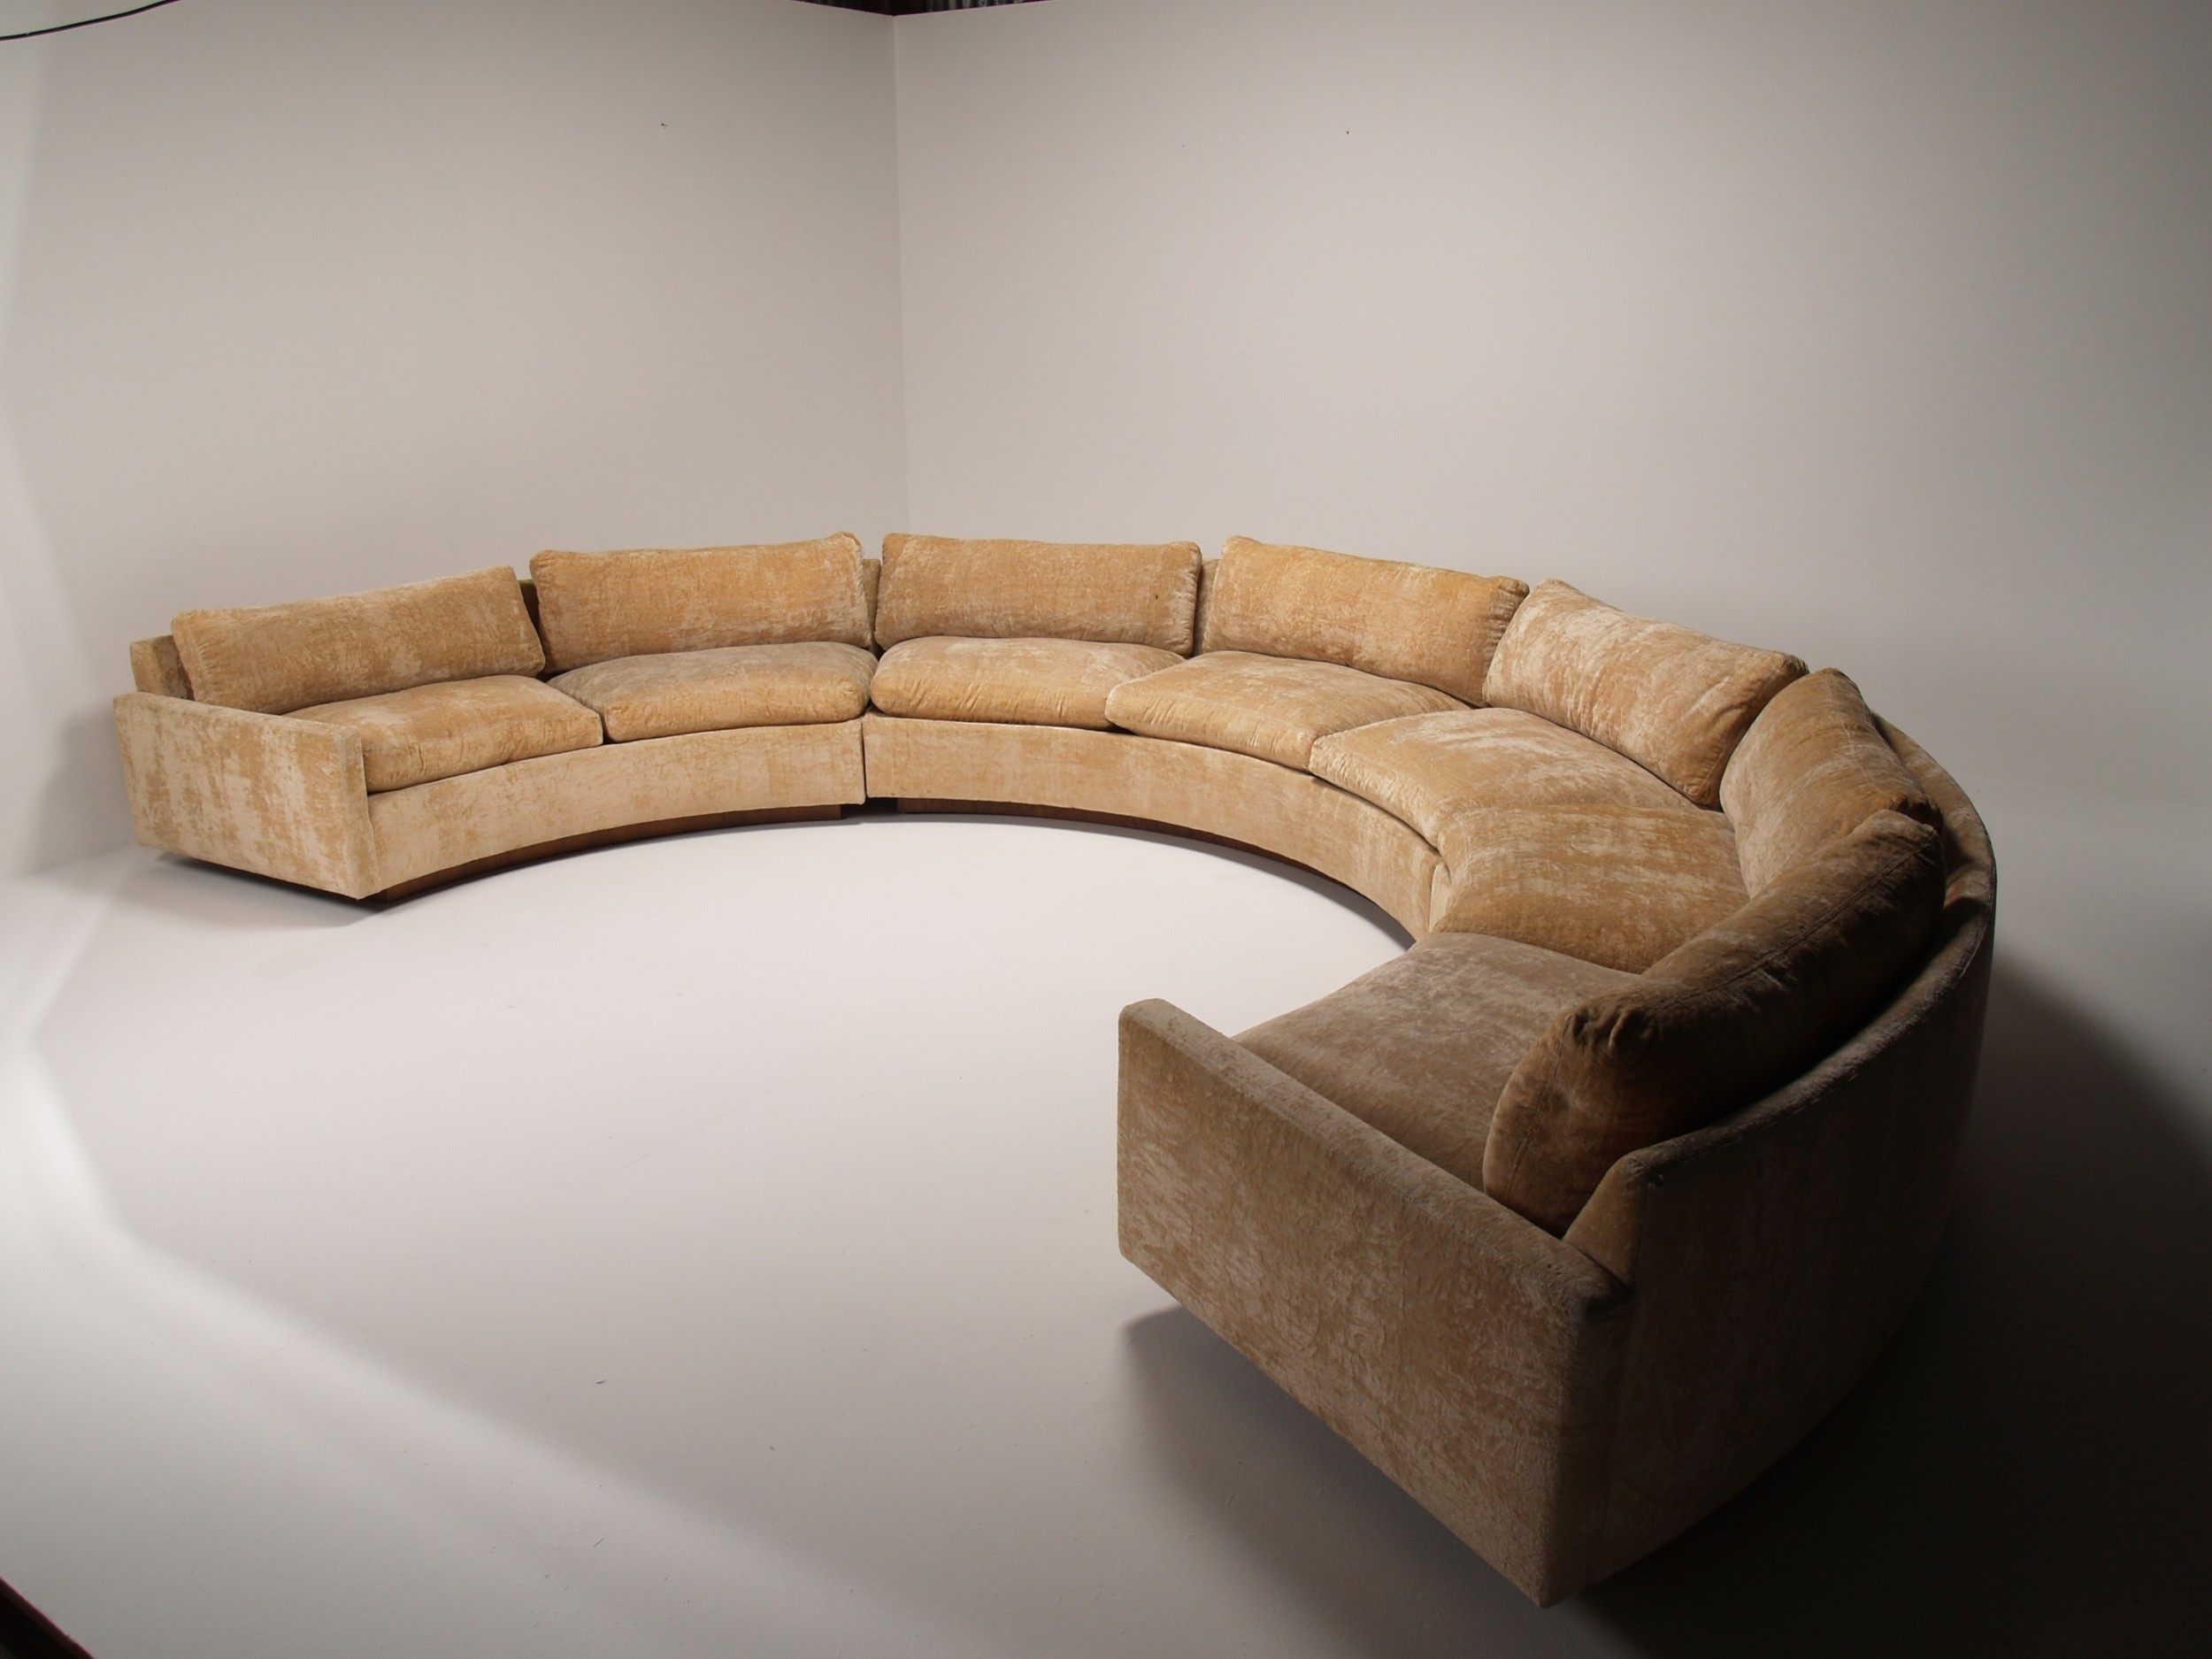 Modern Curved Sofas With Couches Rounded Sectional Leather For Sale With Regard To Rounded Sofas (View 2 of 10)